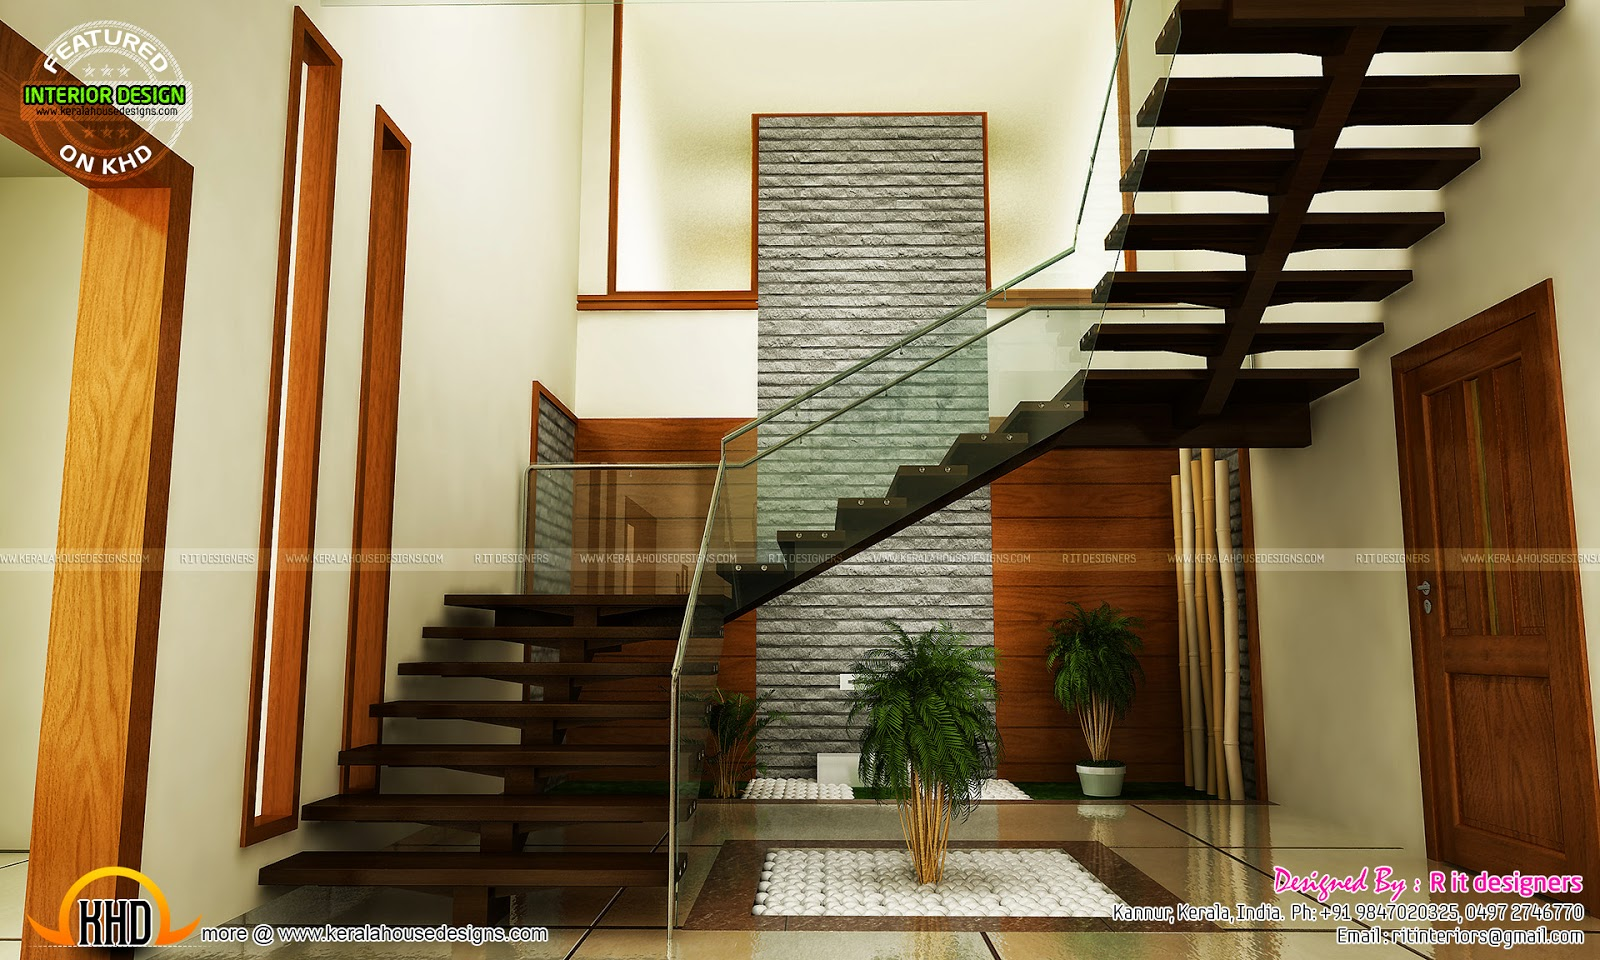 Staircase Bedroom Dining Interiors Kerala Home Design | Interior Staircase Designs For Indian Homes